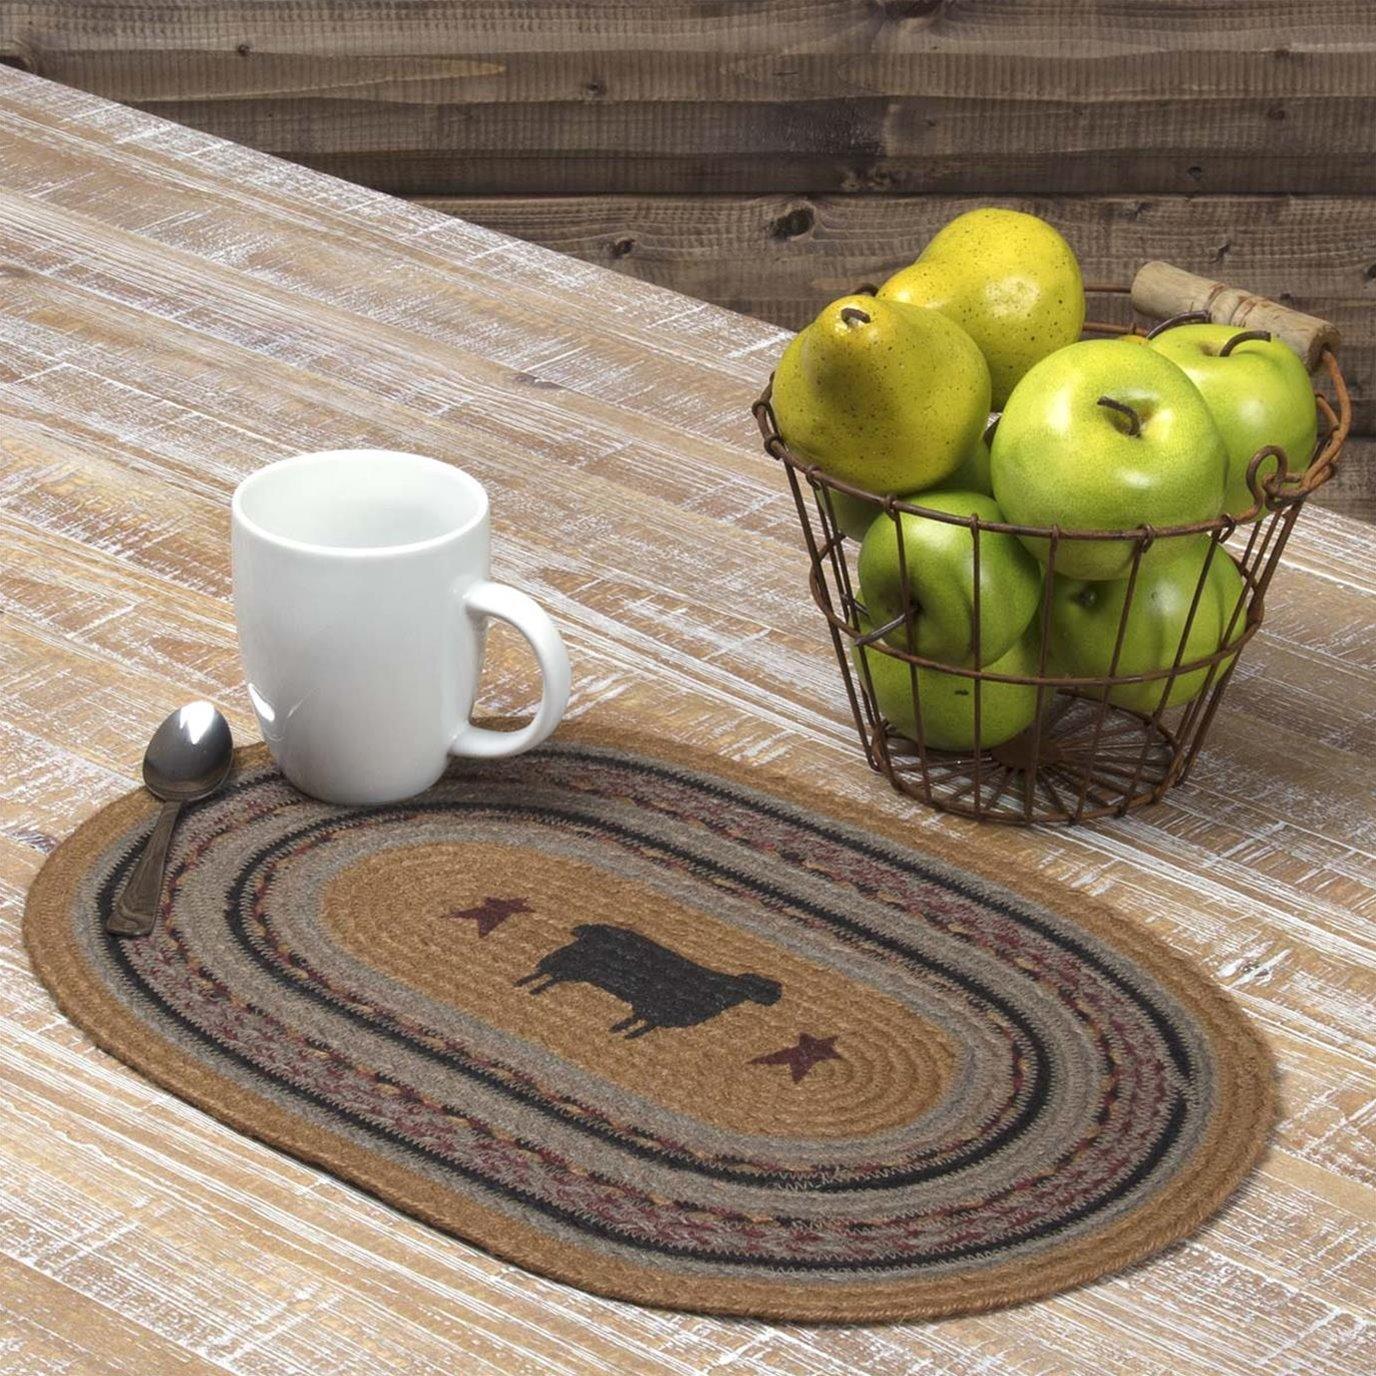 Heritage Farms Sheep Jute Placemat Set of 6 12x18